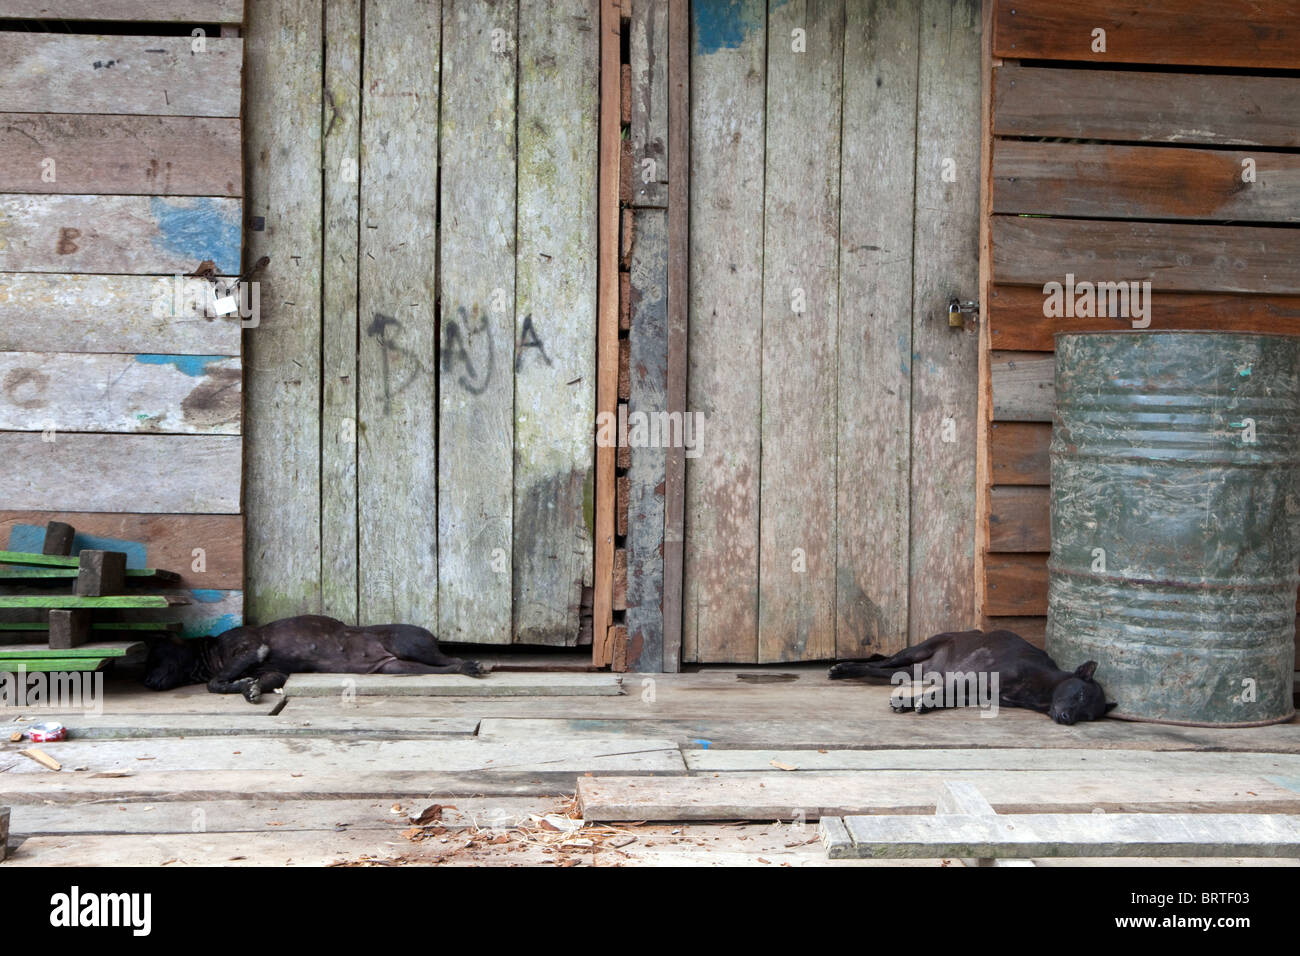 Sleeping dogs are seen outside a house in a Penan Village near Mulu National Park in Borneo, Malaysia - Stock Image